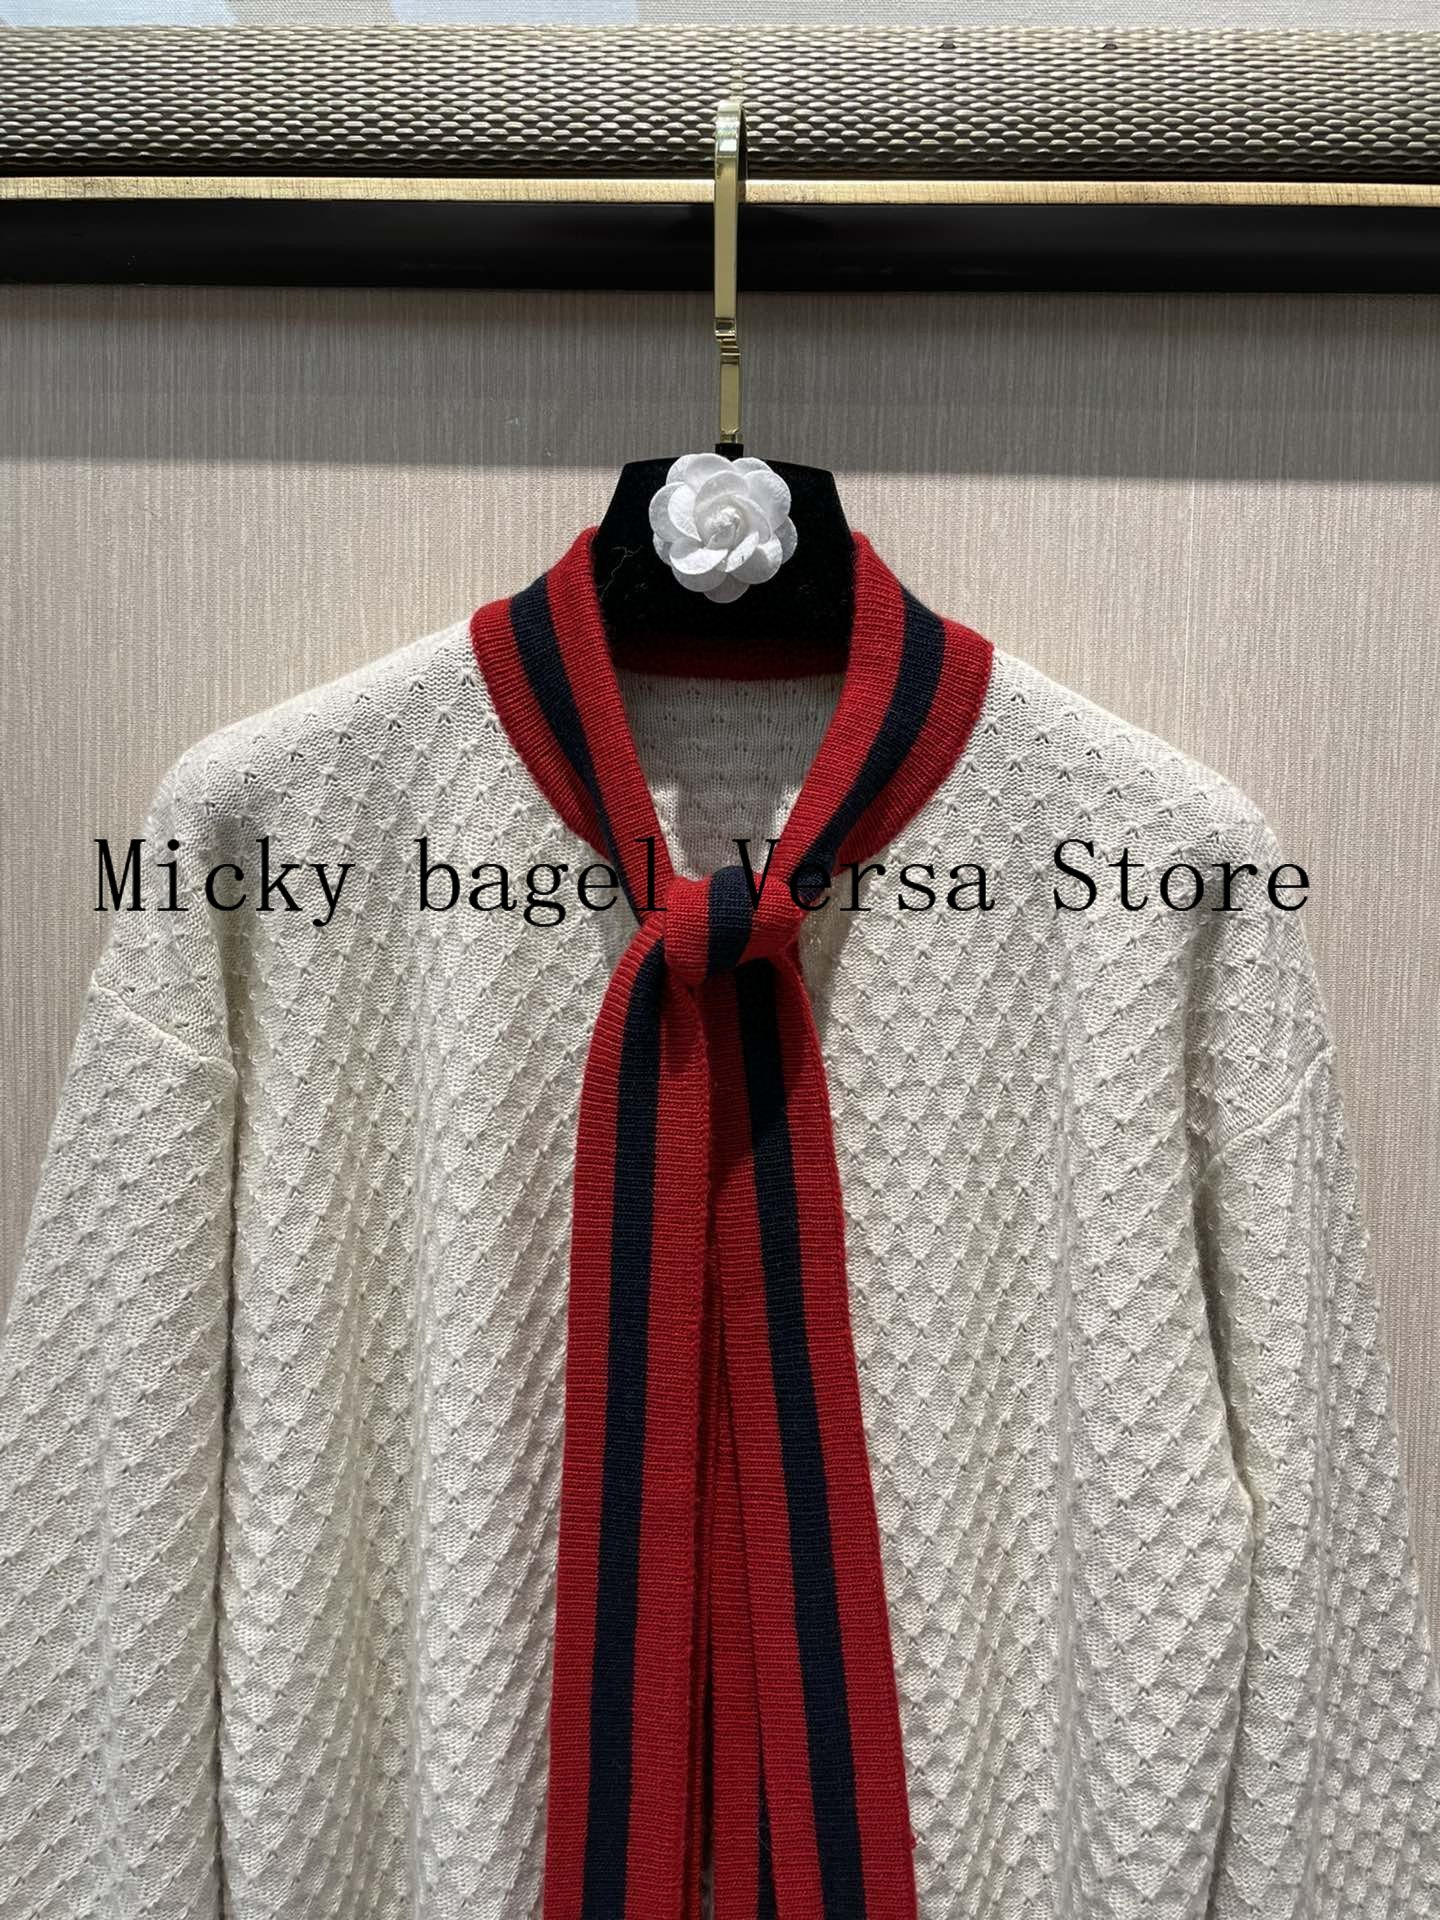 2021 luxury brand color contrast letter printing fashion women's top versatile bow collar age reducing knitted cardigan coat enlarge